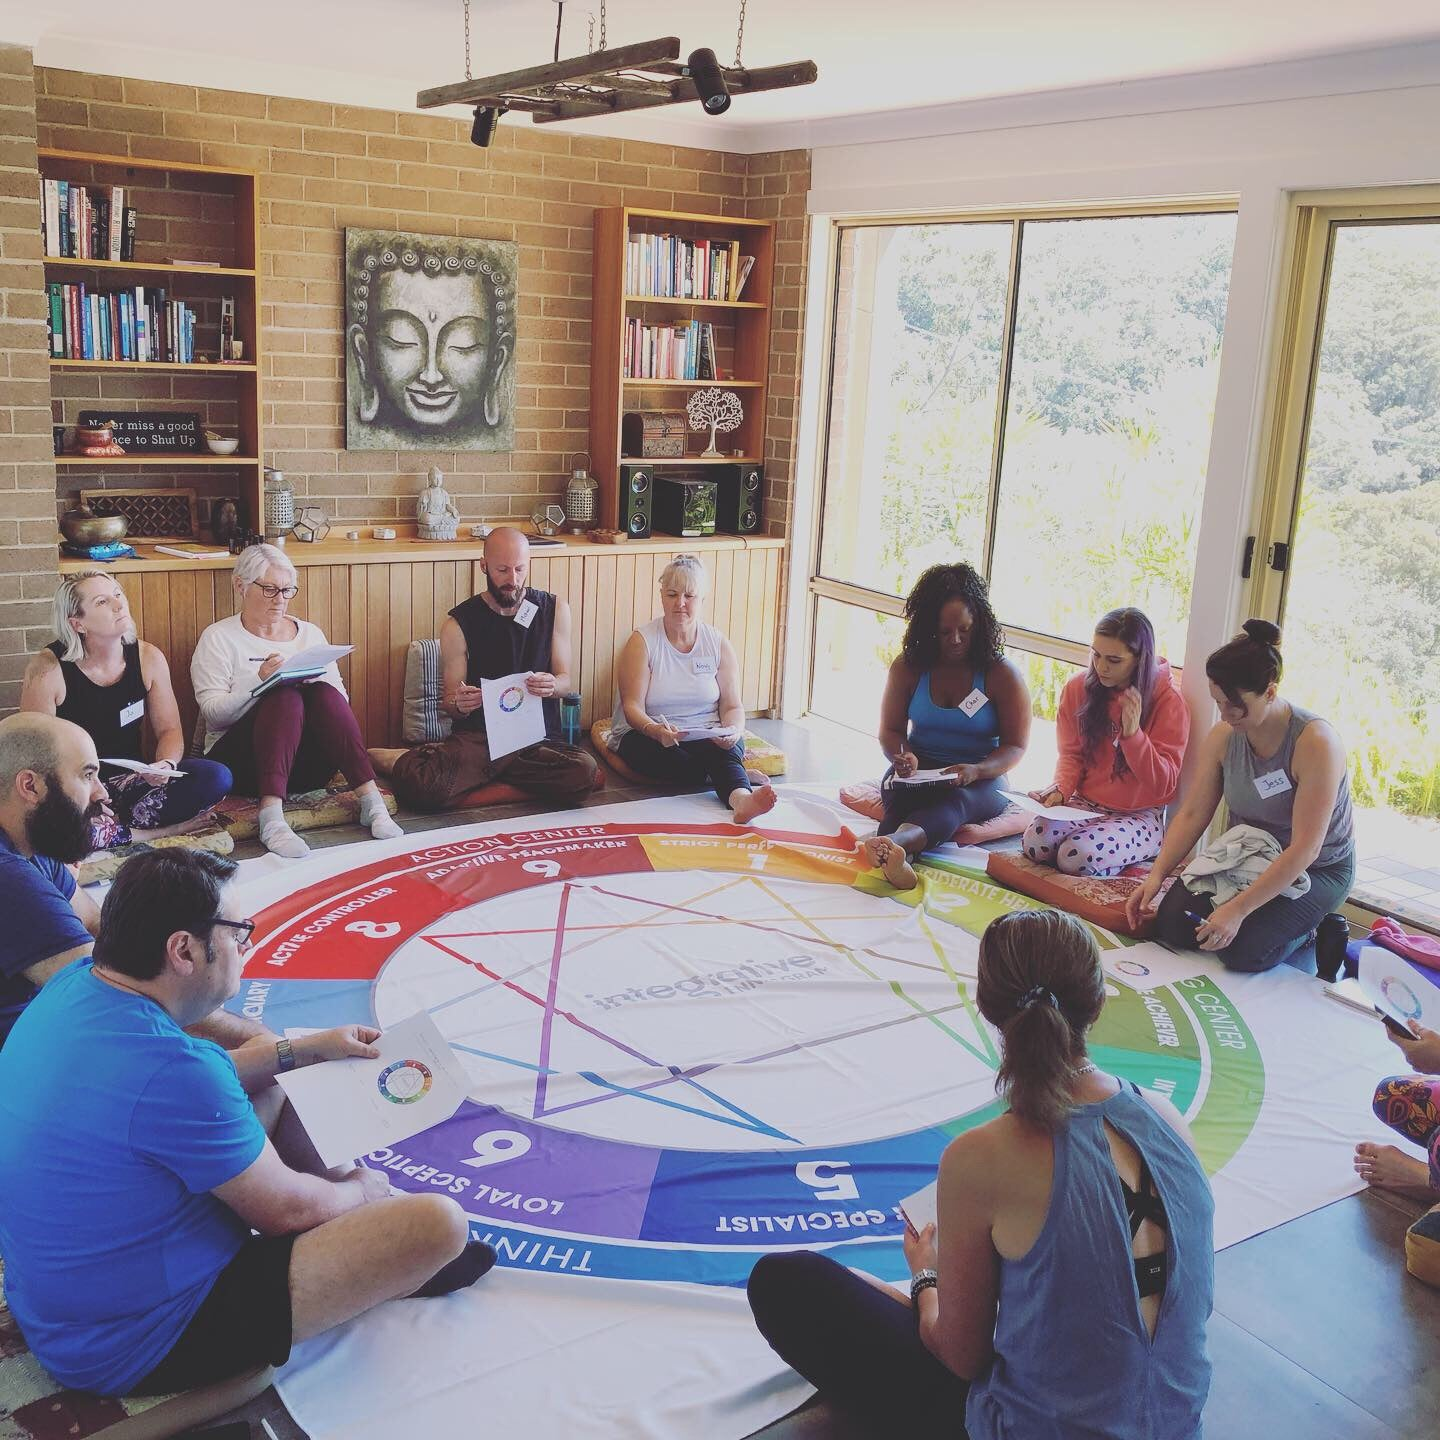 'Explore Yourself & Free Yourself' - One day Enneagram Retreat at La Tierra Curativa - Fri Jul 23rd 2021